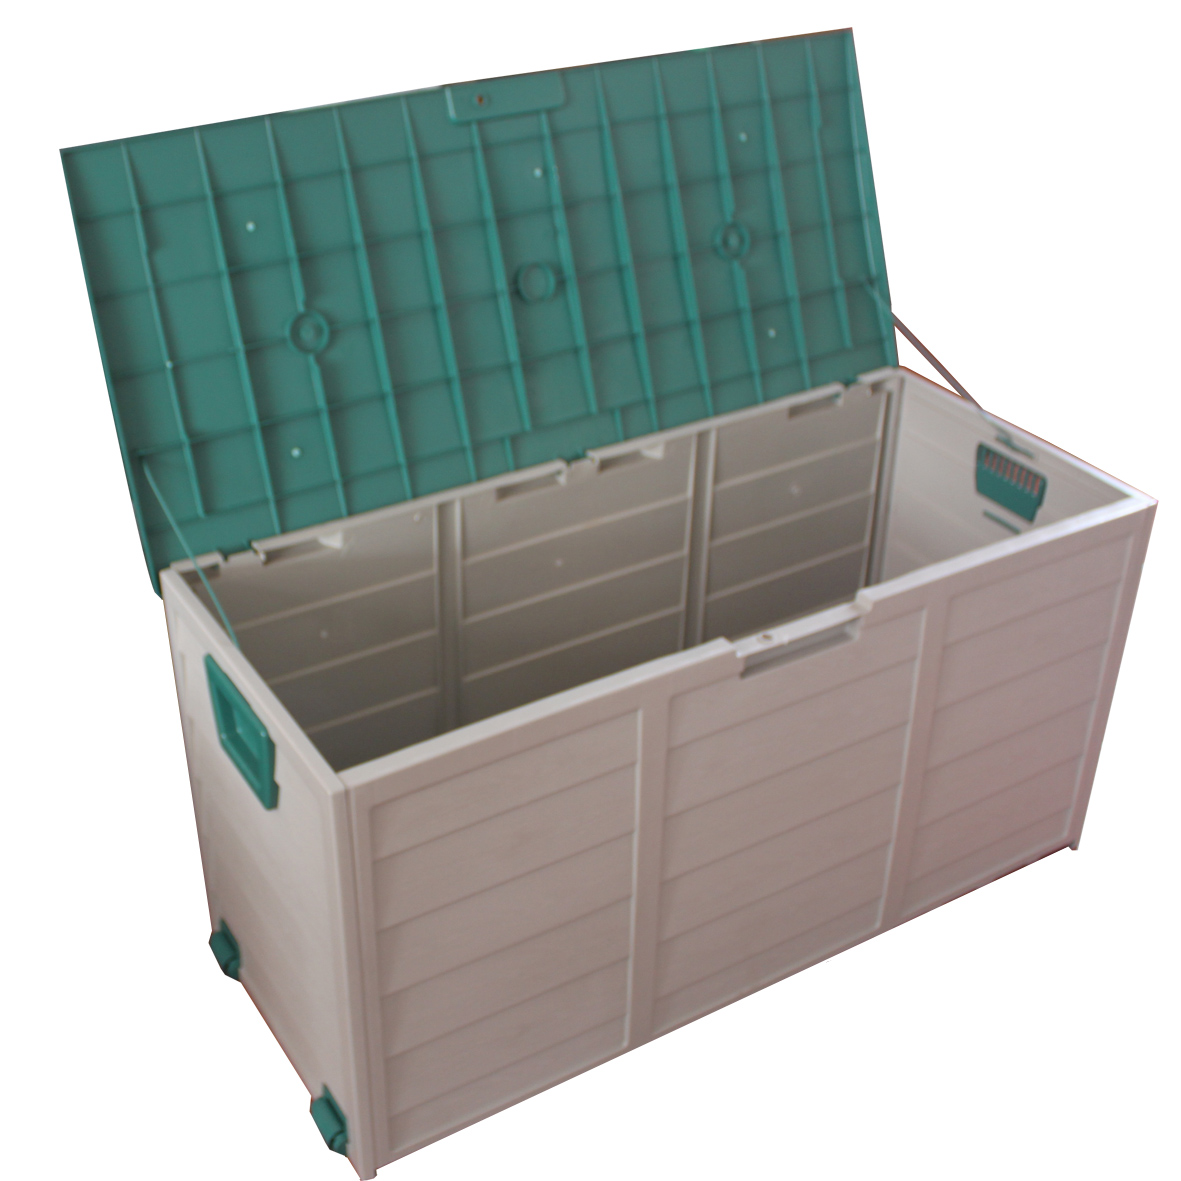 Garden Sheds Jersey Channel Islands new garden outdoor plastic utility storage chest shed box case